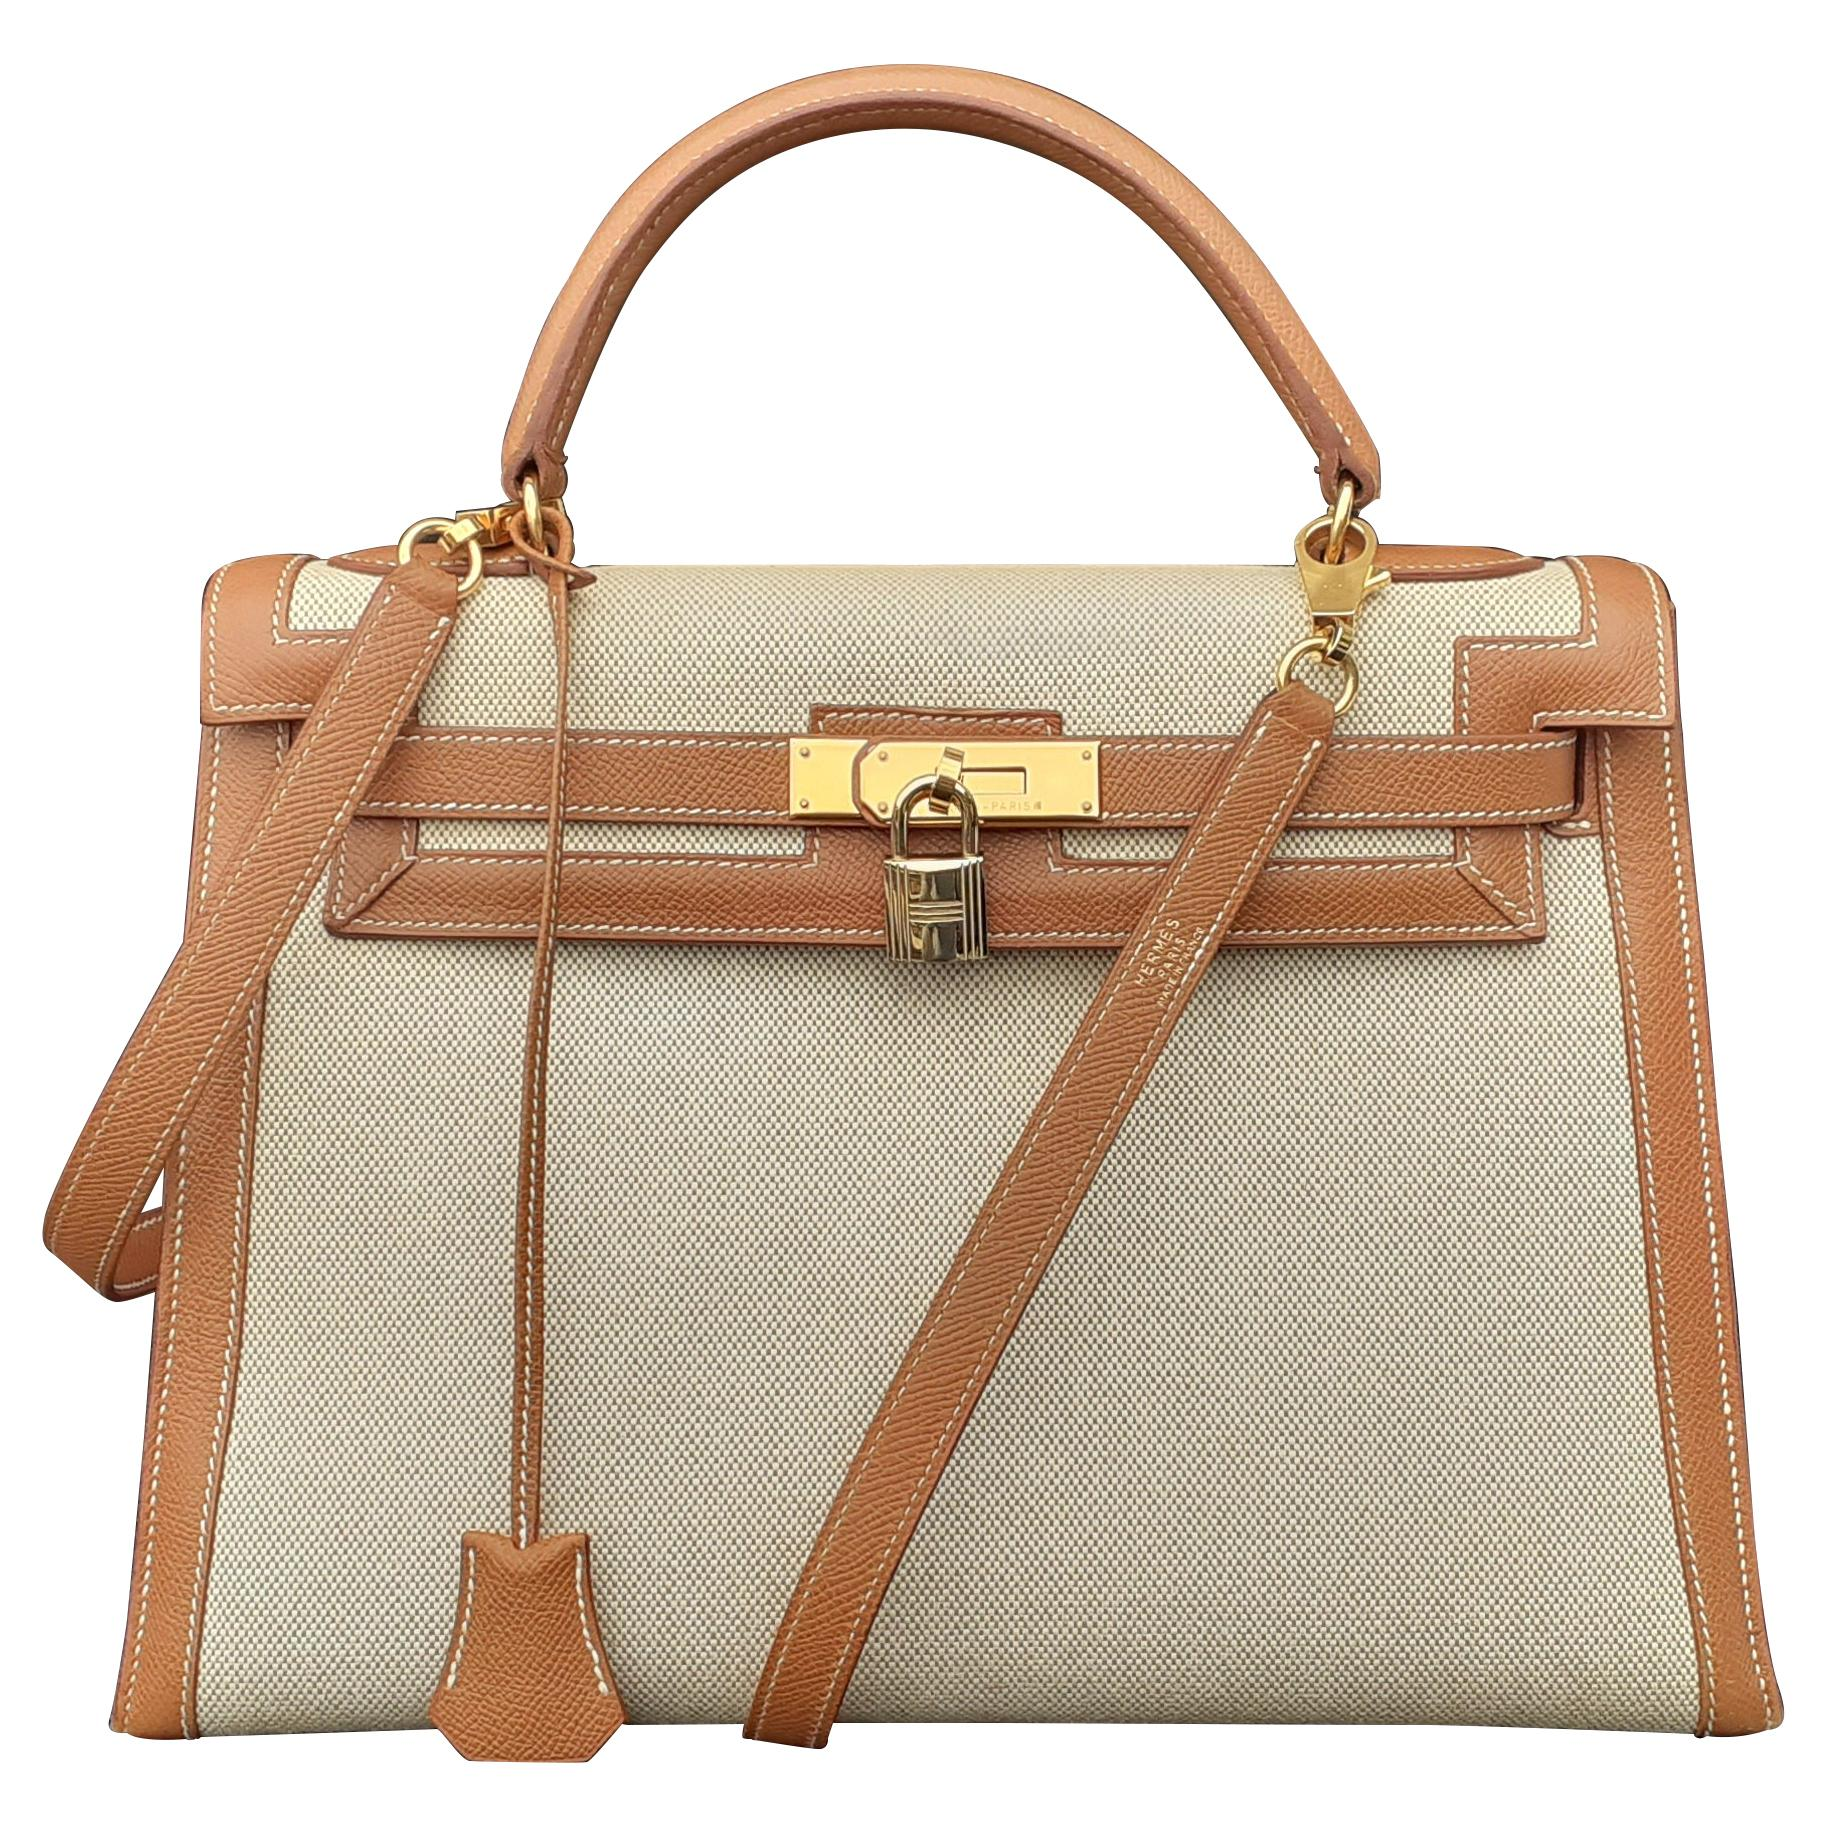 Hermès Vintage Toile Canvas and Gold Leather Kelly 32 Bag Golden Hdw RARE